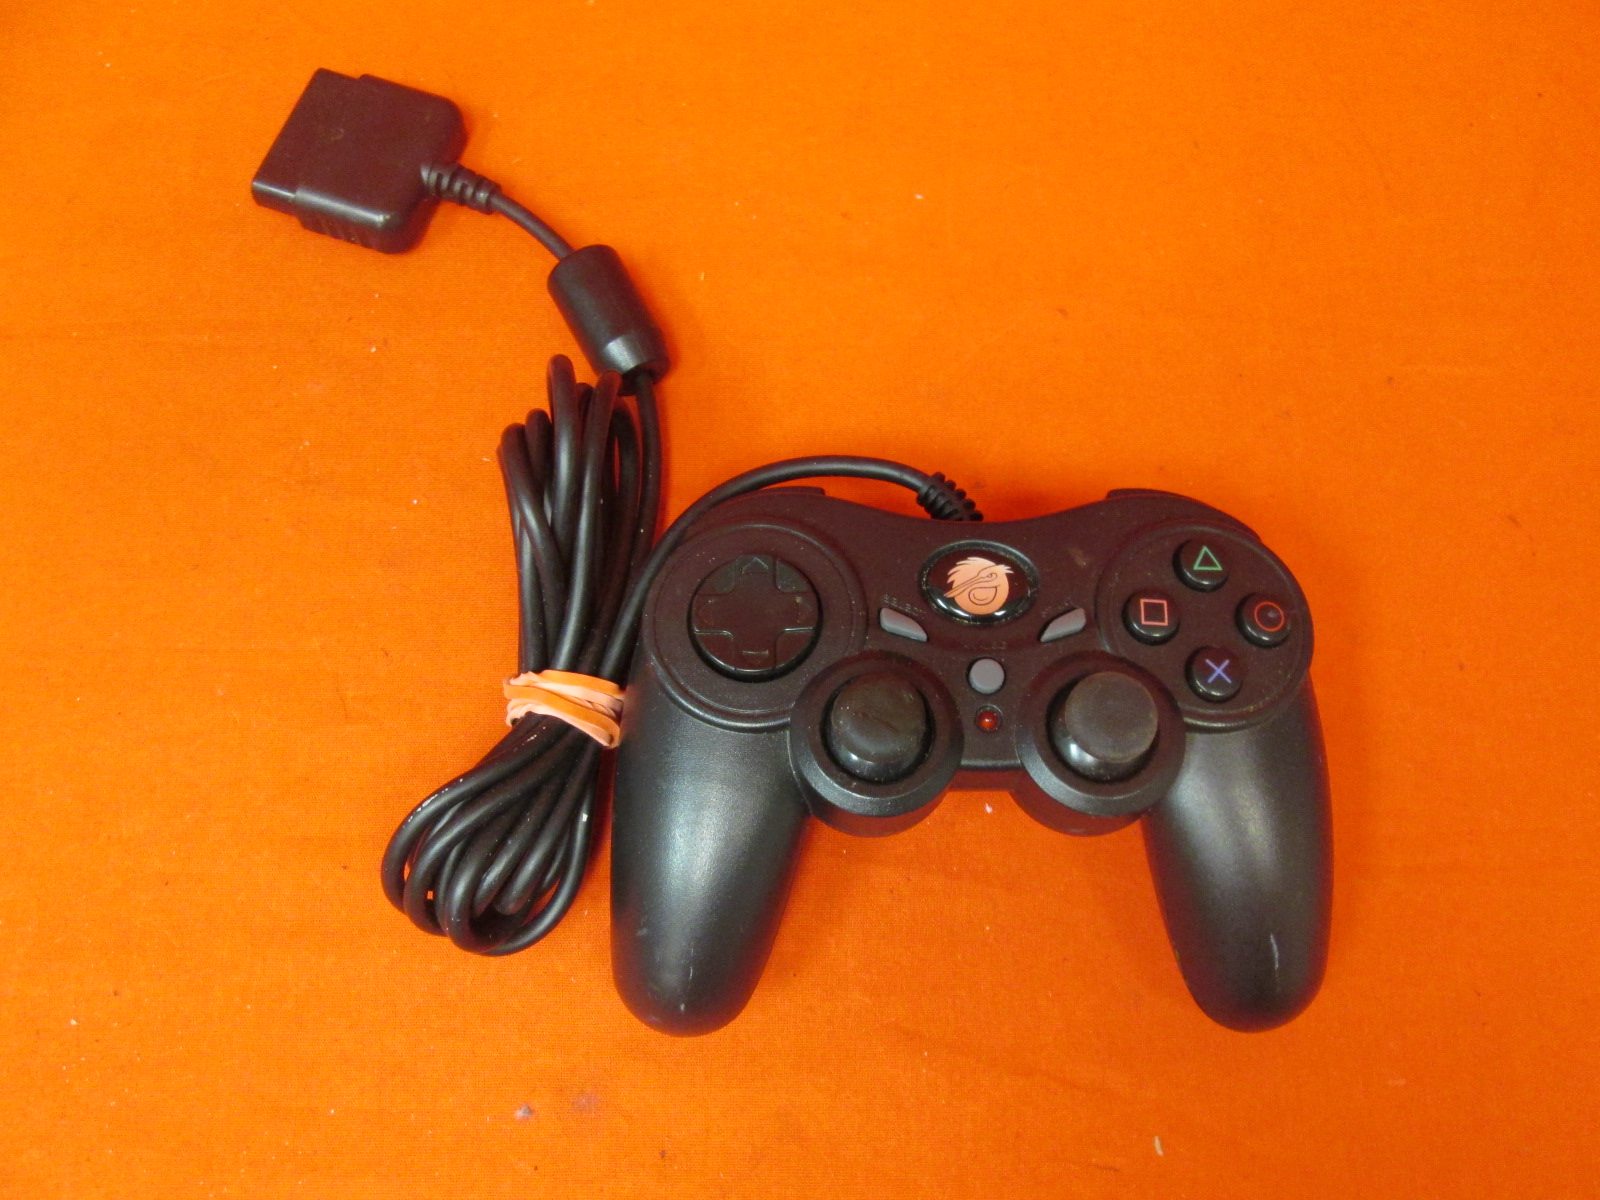 Pelican PL-6604 Retro Shock 2 Fully Analog PS2 Controller